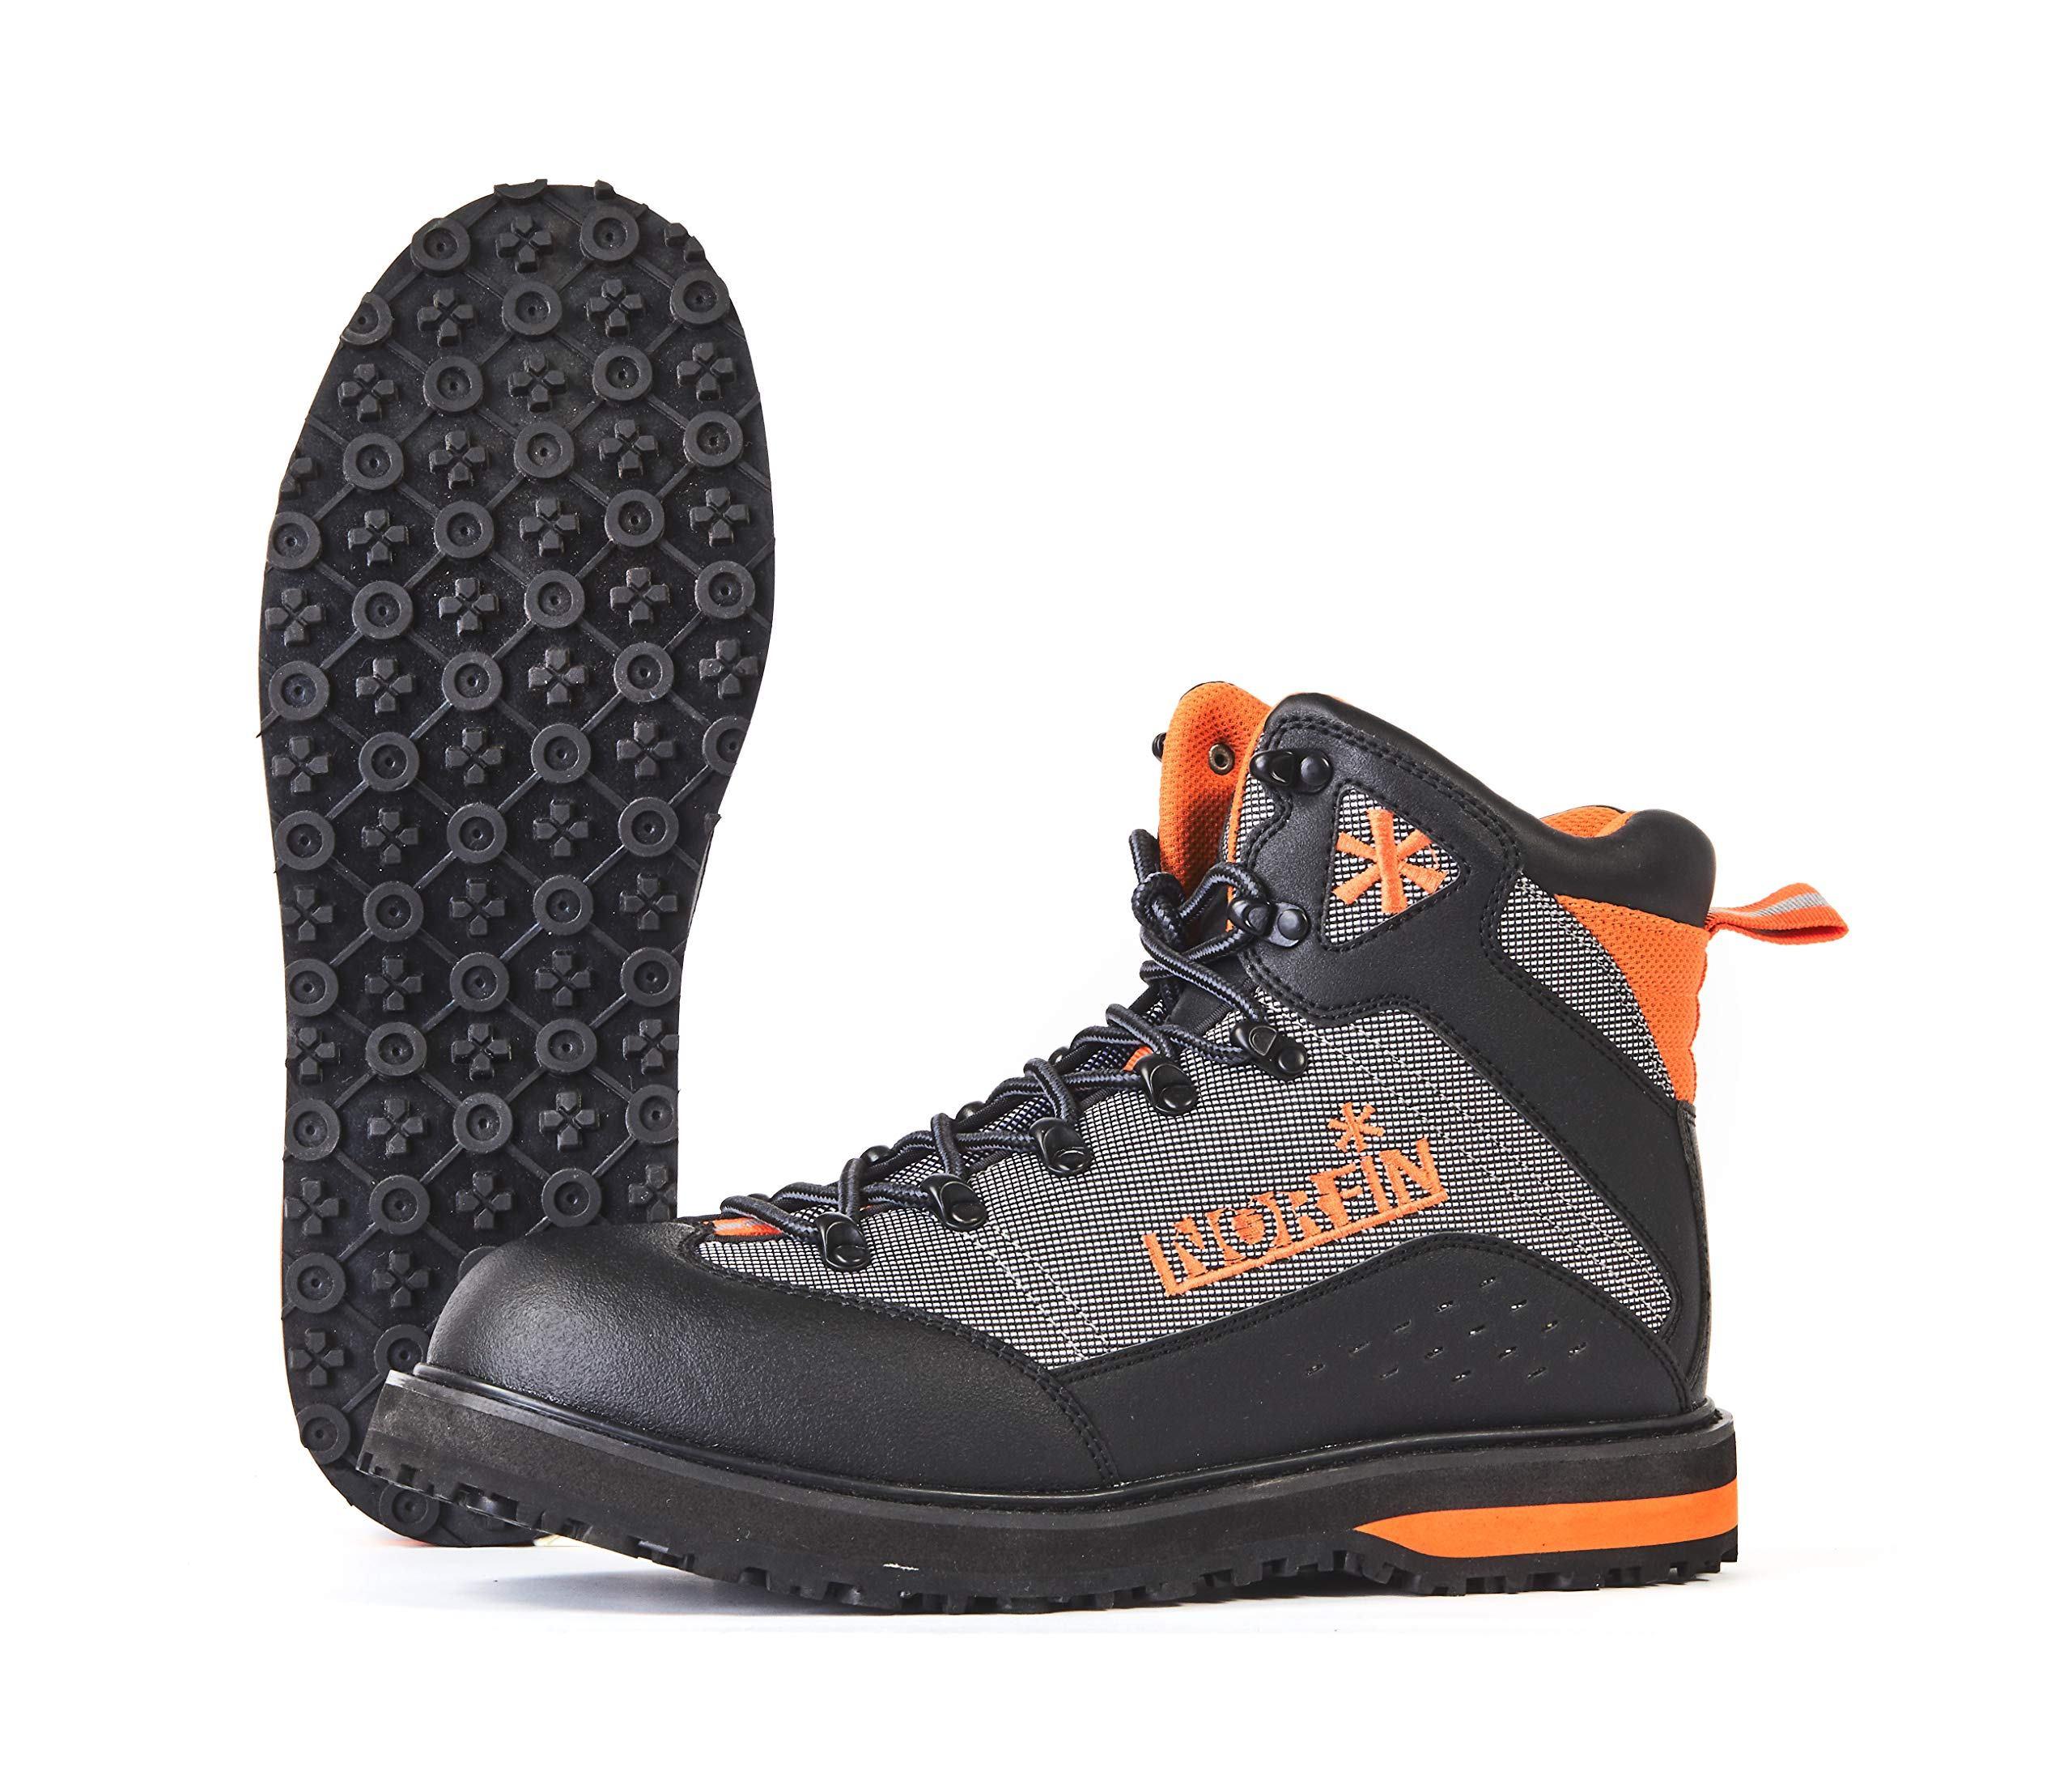 Norfin Edge - Wading Boots - Water Repellent Toe and Heel - Reinforced with PVC Leather - Light and Comfortable - Sole EVA+Rubber - Elastic Sole for Traction